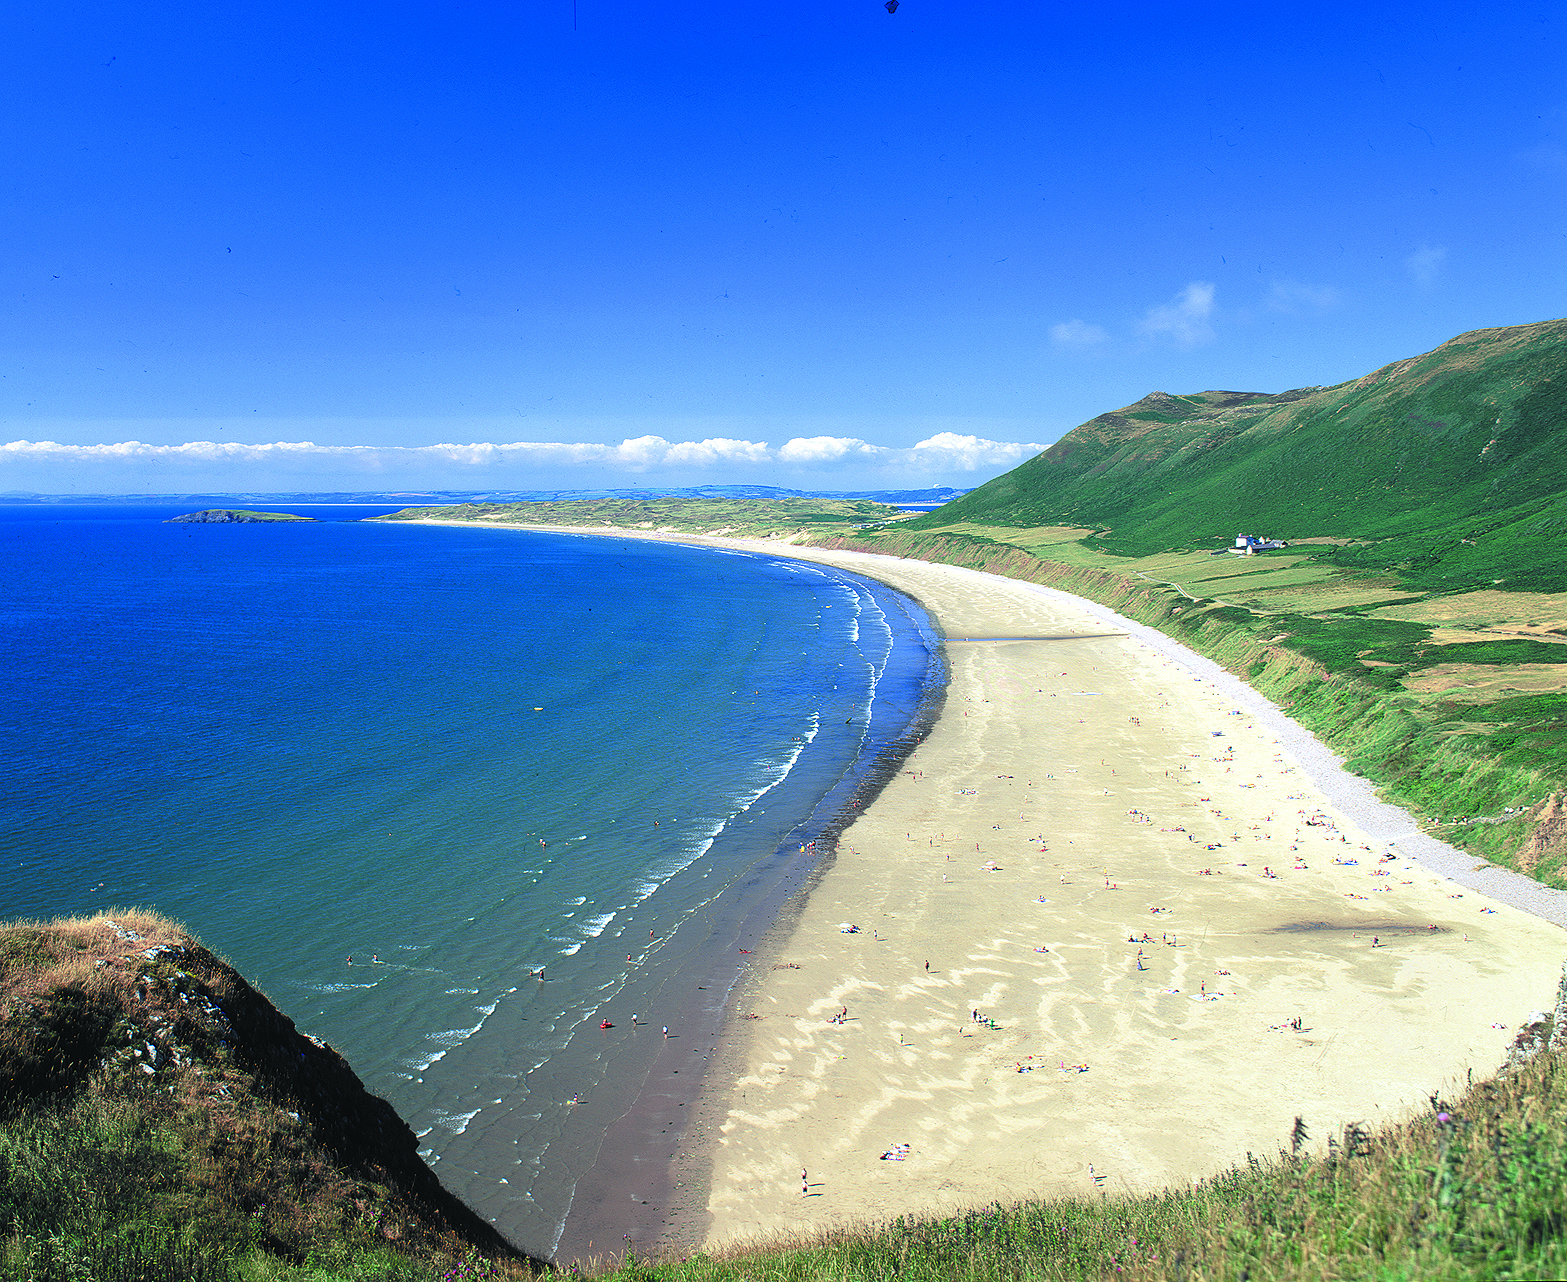 Gower Peninsula, Wales. Image courtesy of Visit Wales